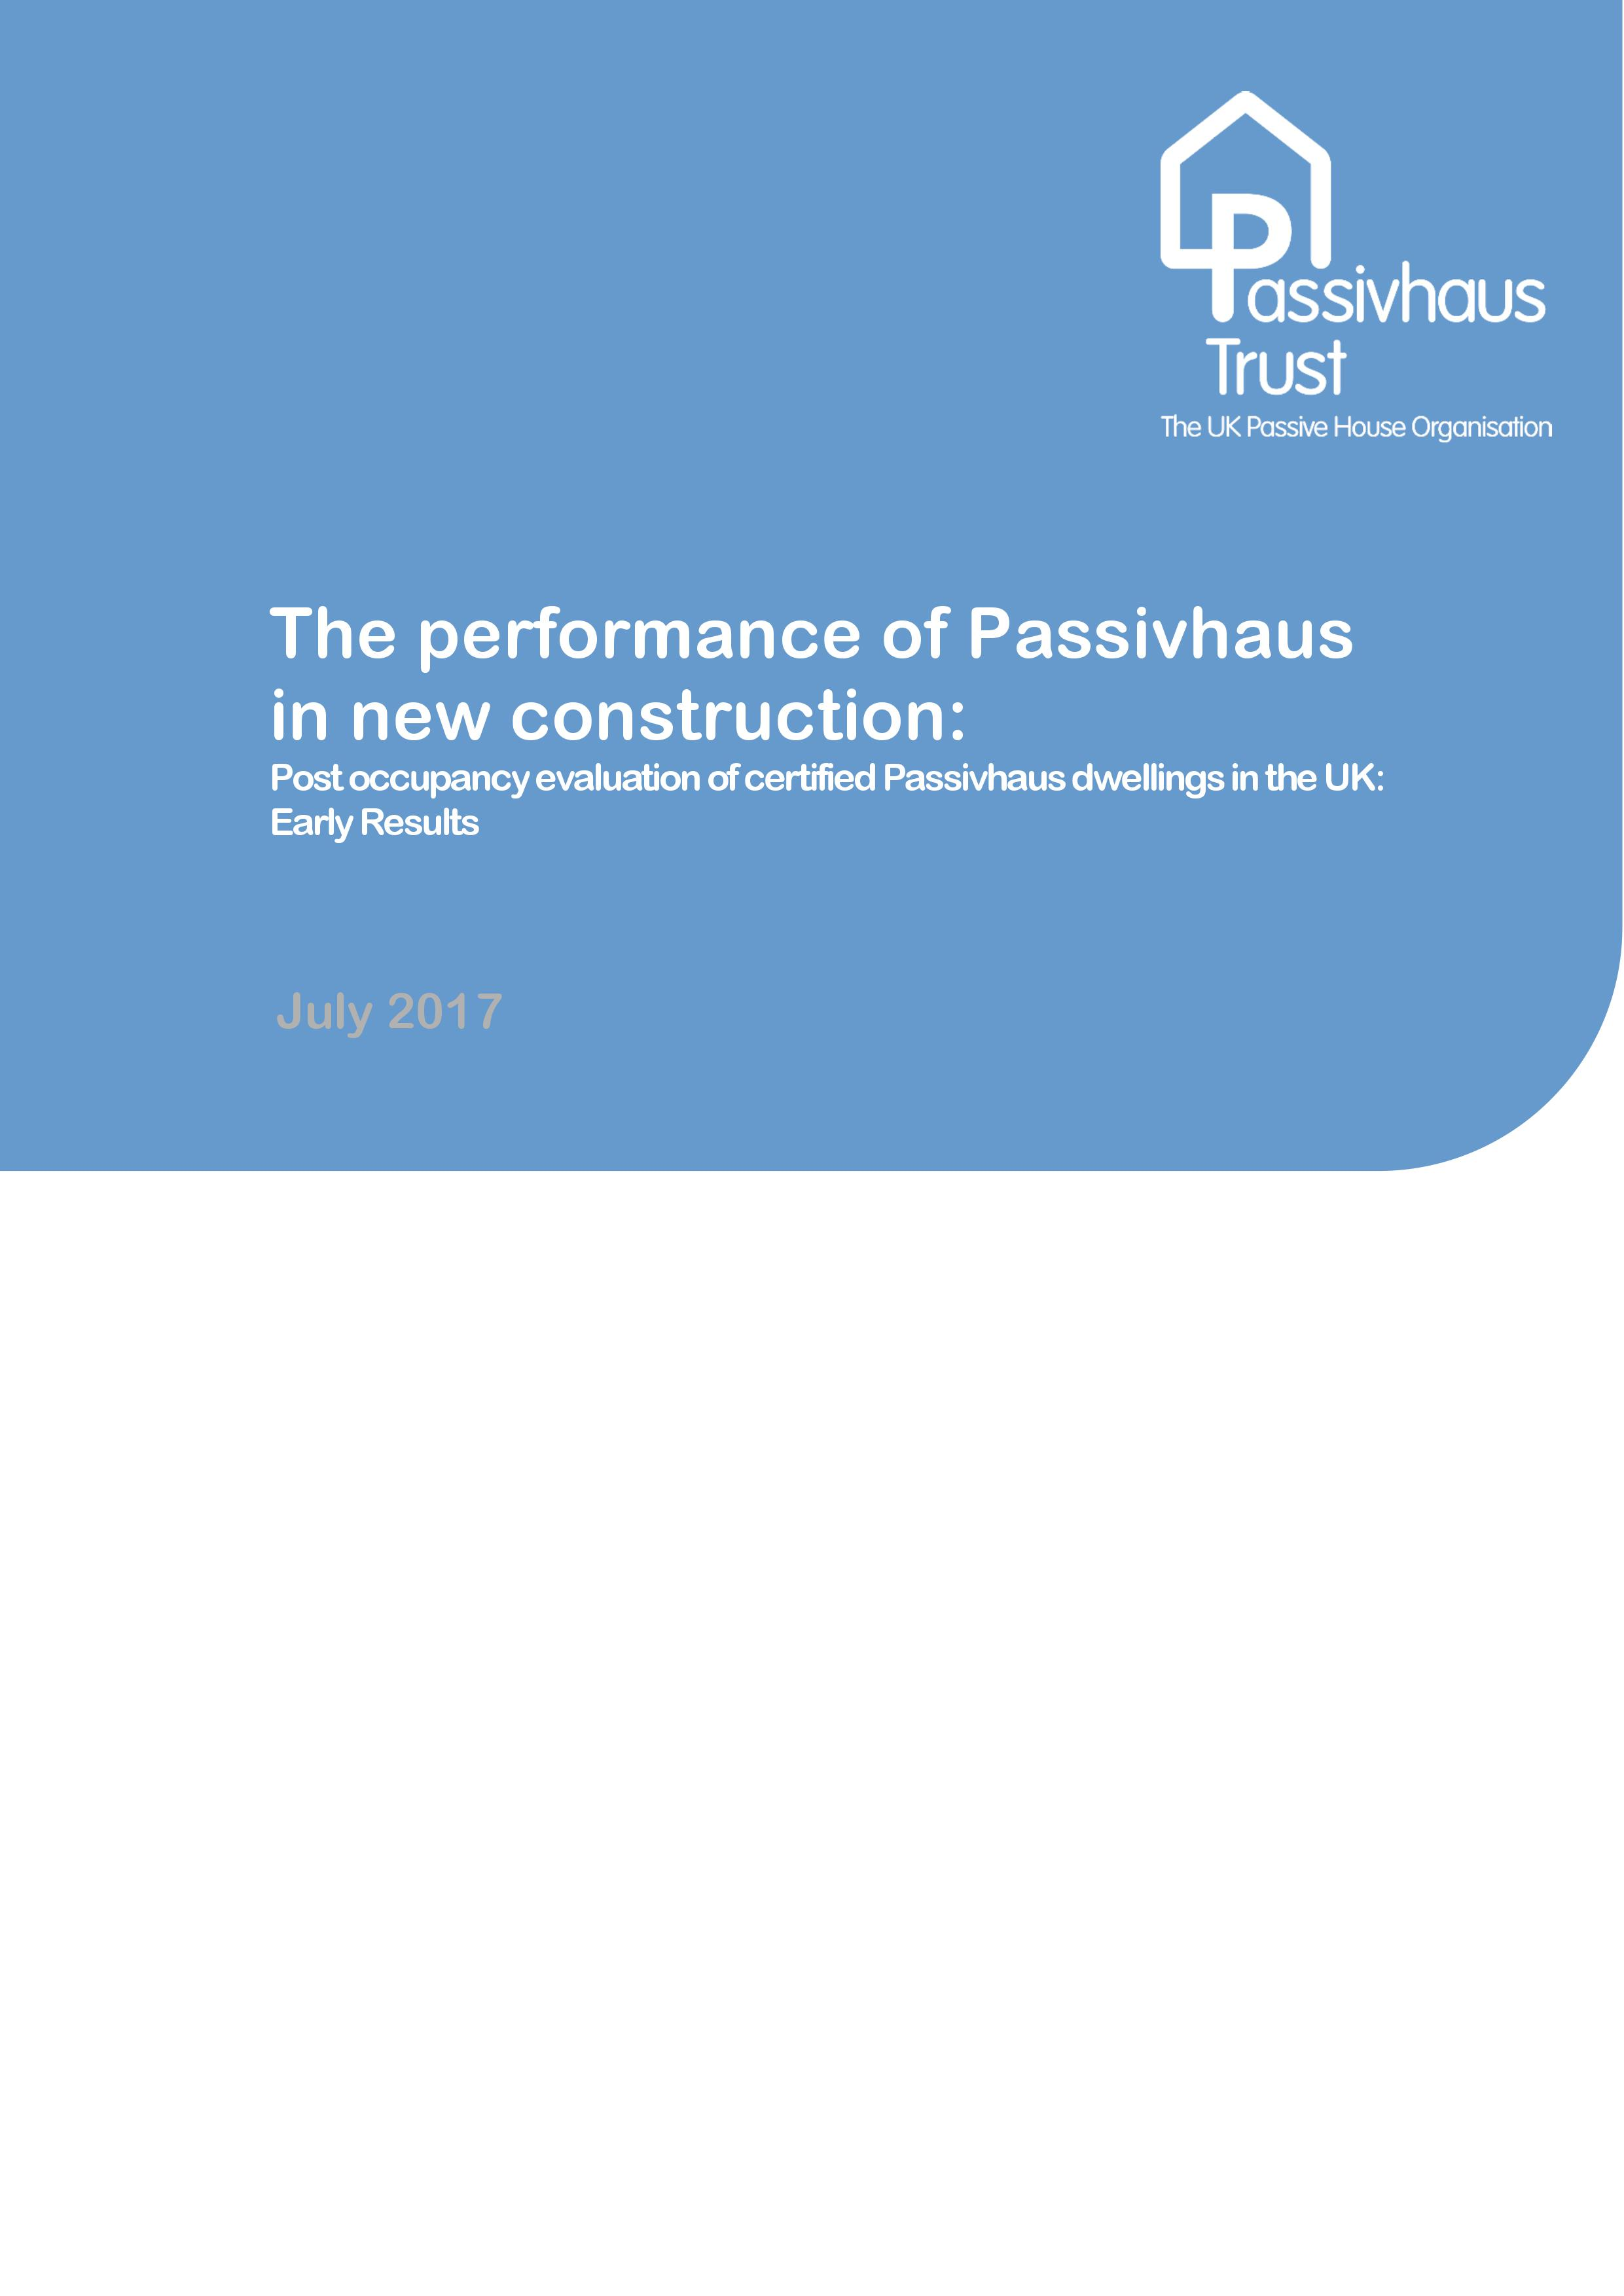 The performance of Passivhaus in new construction